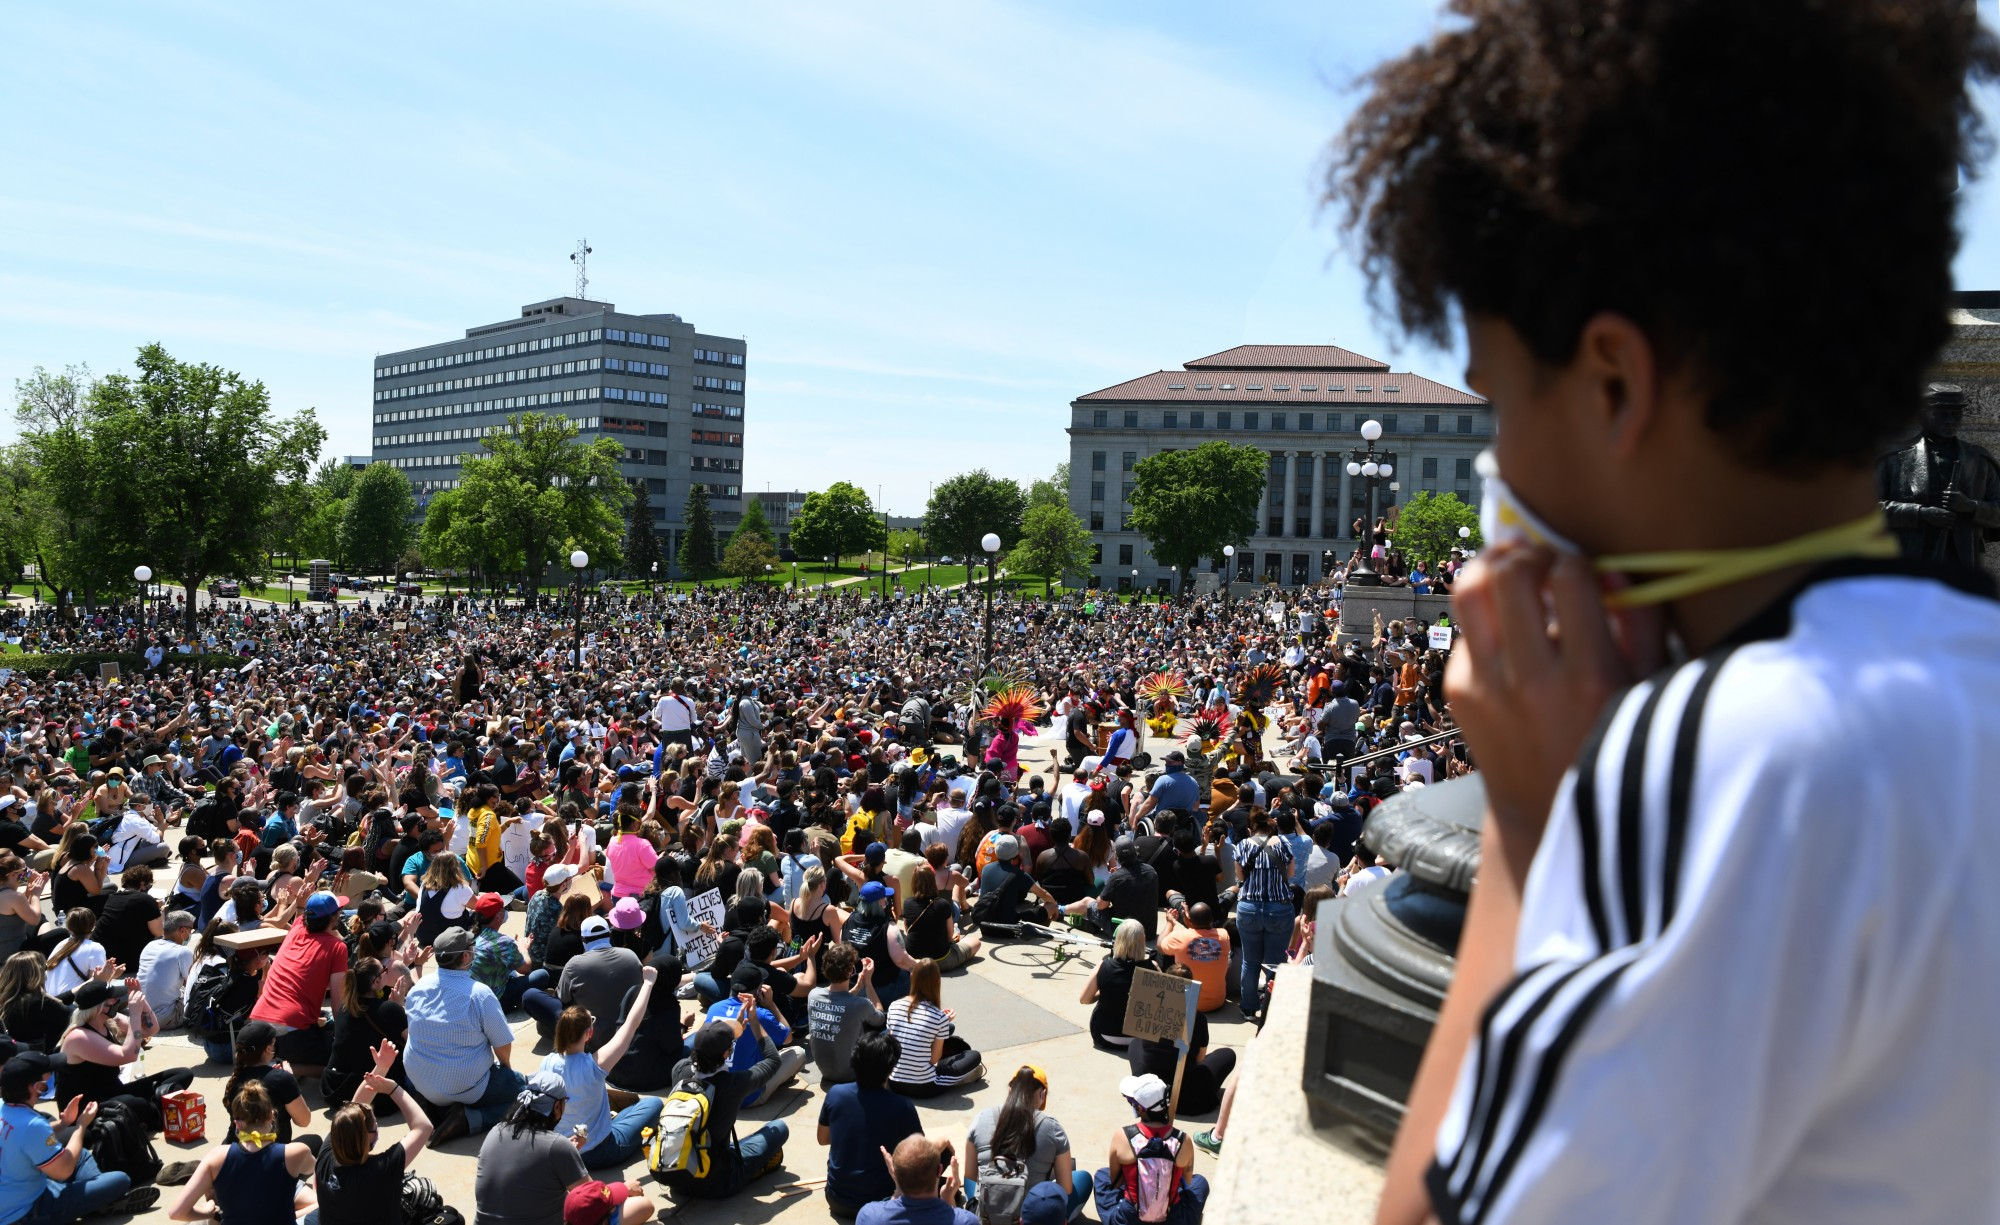 """""""Markus,"""" a 13-year-old from Cottage Grove, watches Yaocenoxtli, with Huitzillin and Mexica Yolotl supporting, give a presentation at the Minnesota State Capitol on Sunday, May 31. """"There are a lot of people,"""" Markus said. """"I didn't know it would be this much."""""""